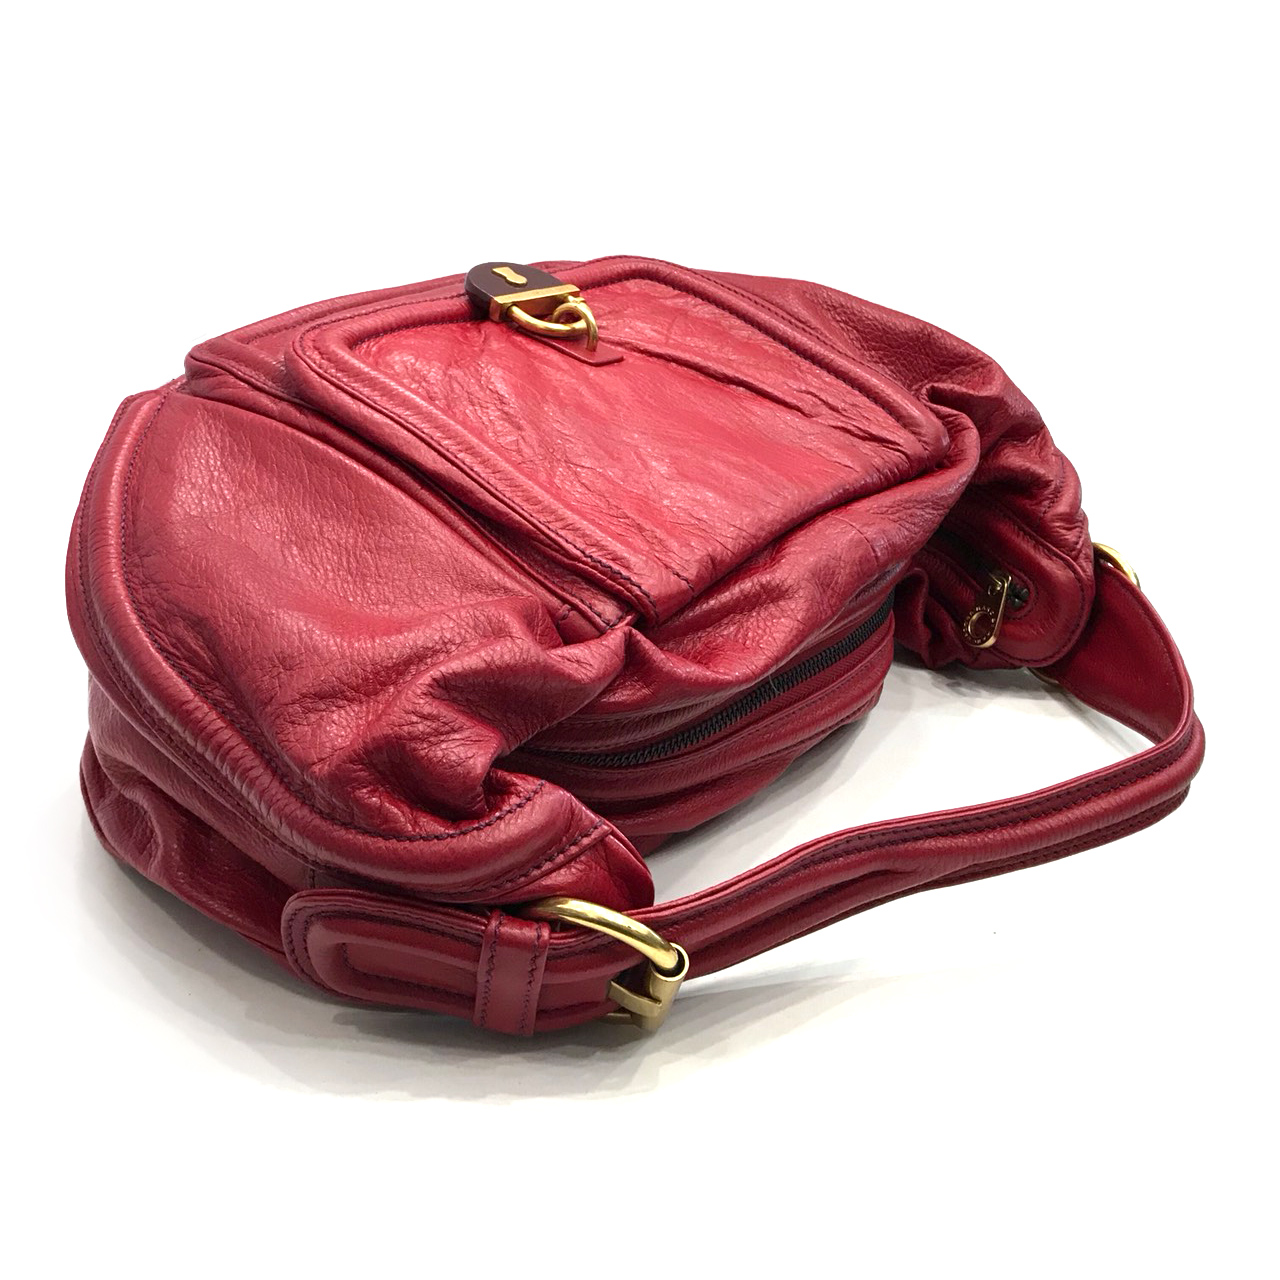 Used Marc By Marc Jacobs Shoulder bag in Red Leather GHW